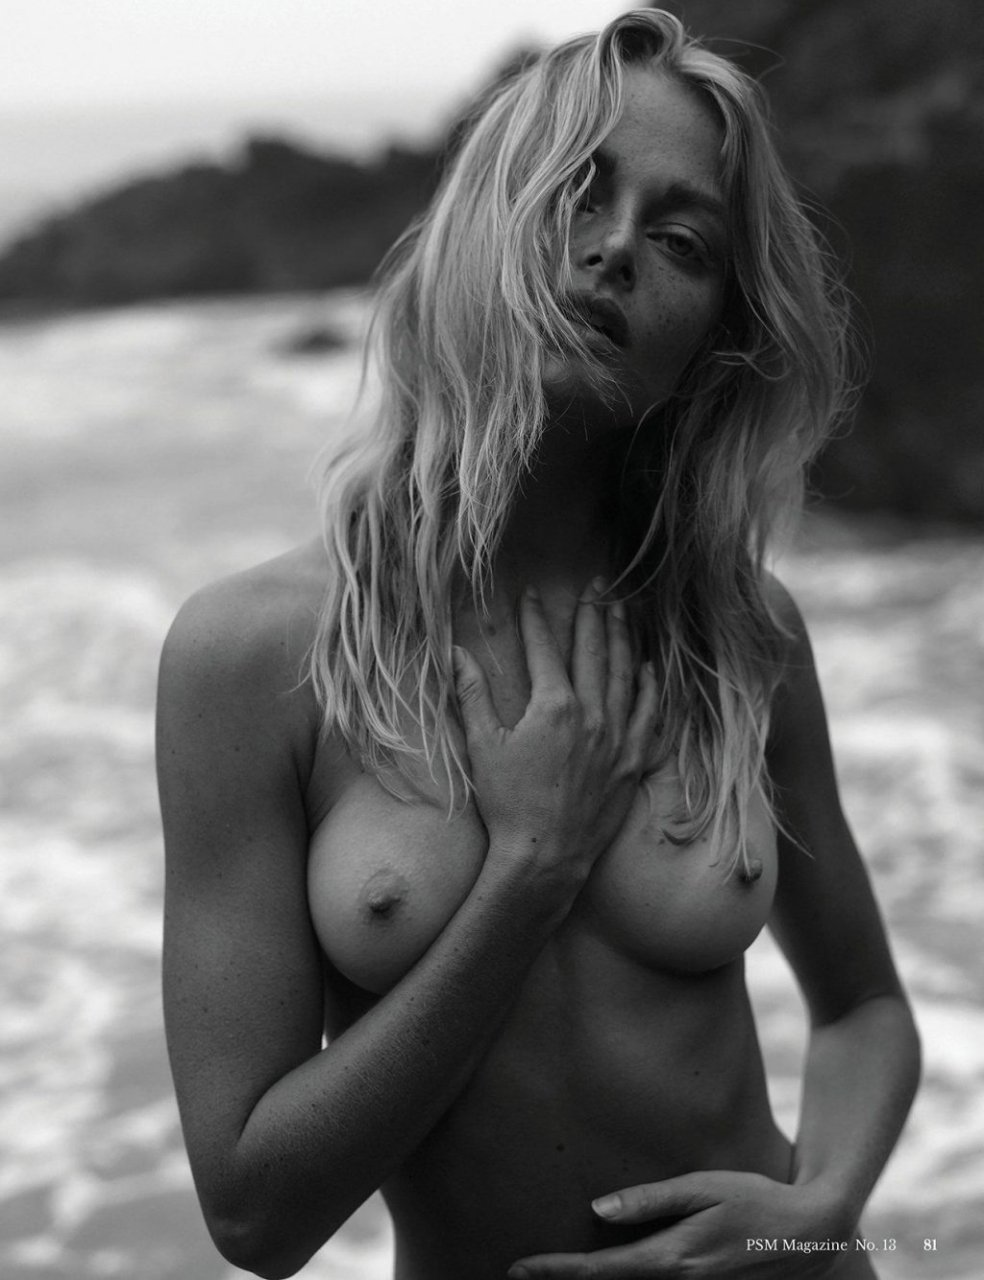 Ffffound Naked Girl